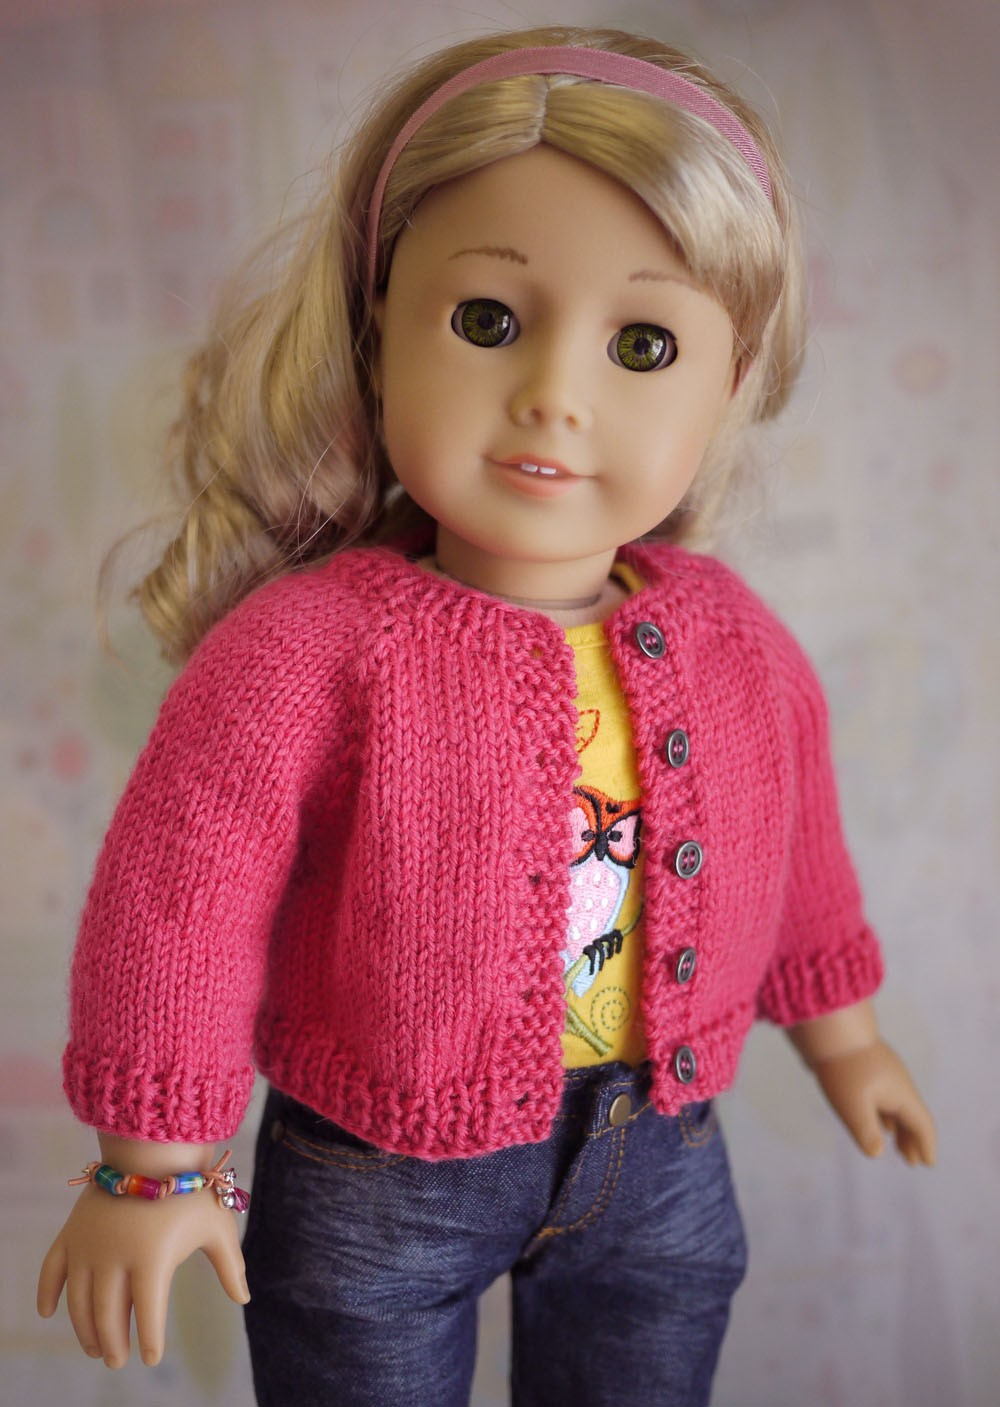 Knitting Doll Patterns : Knitting patterns for american girl dolls a